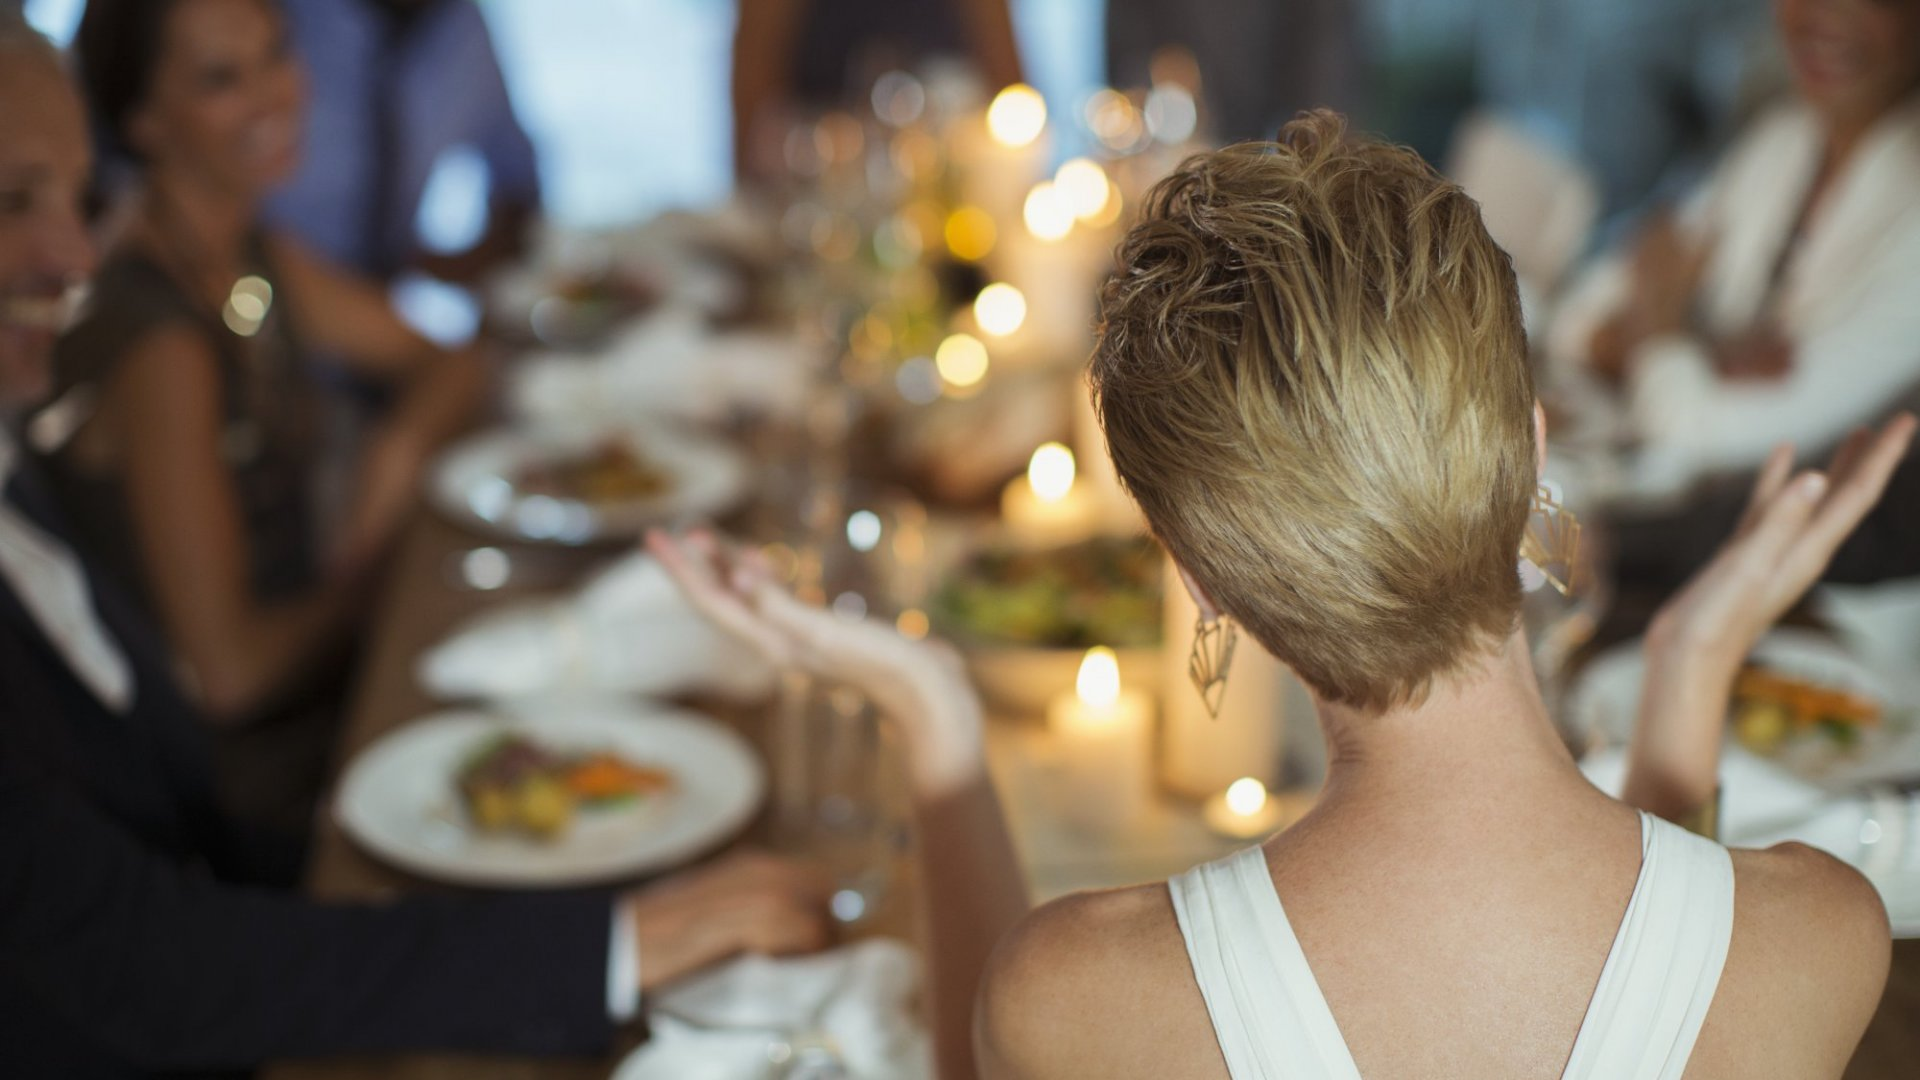 These 4 Tips Will Make You a Master at the Art of Entertaining Clients